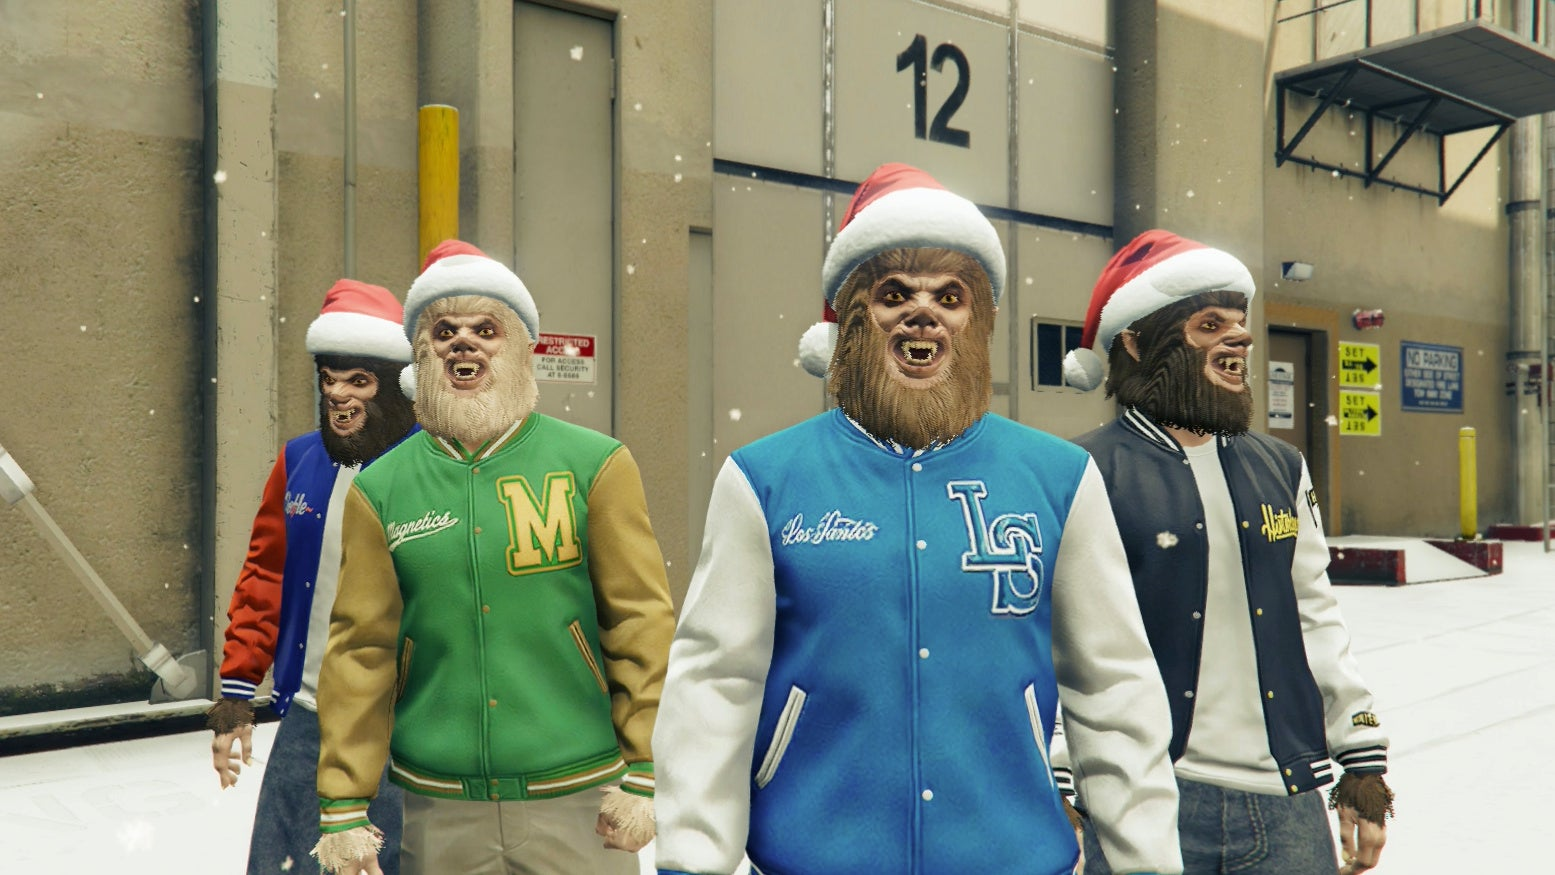 GTA Online's Coolest Christmas Present Turns Players Into Building-Hopping Monsters